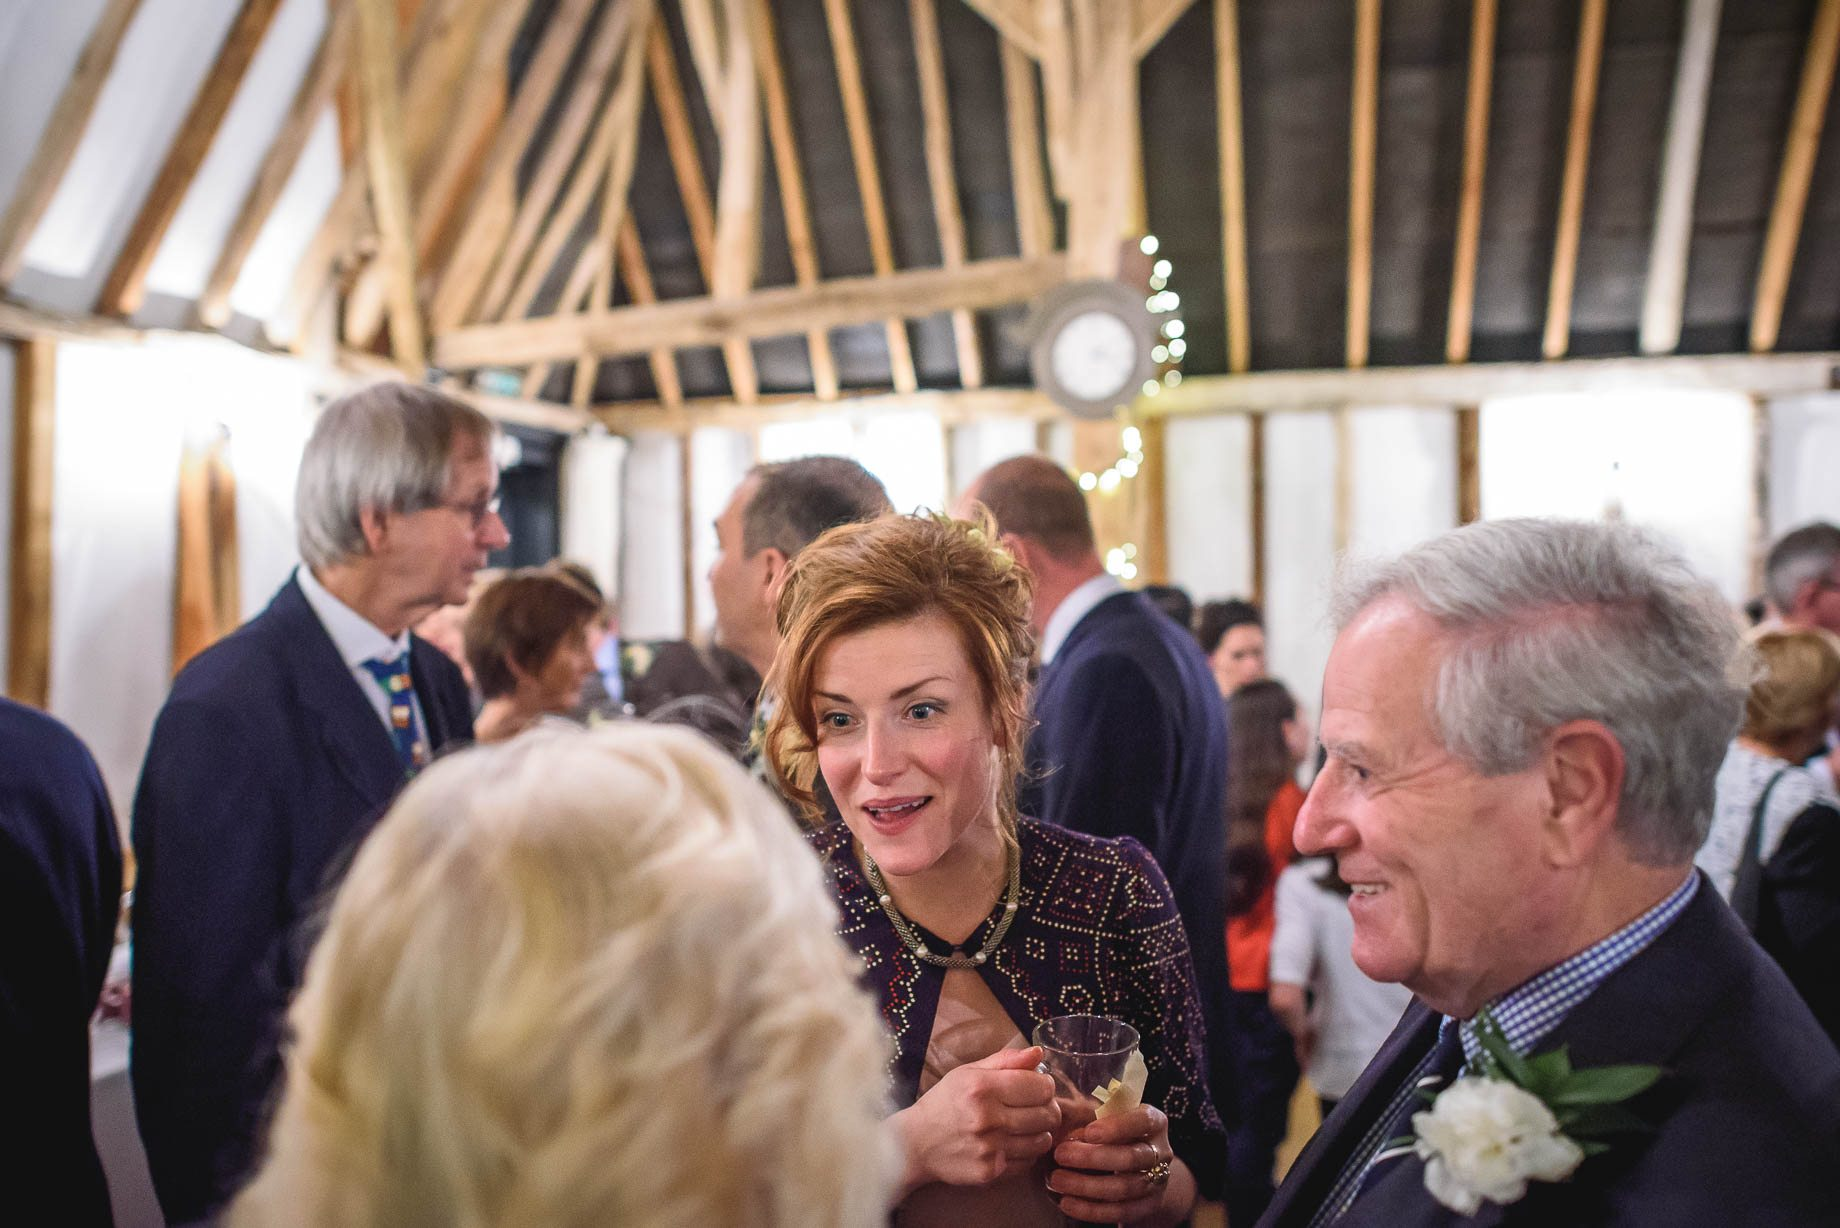 Clock Barn Wedding Photography - Eva and Ollie (105 of 170)